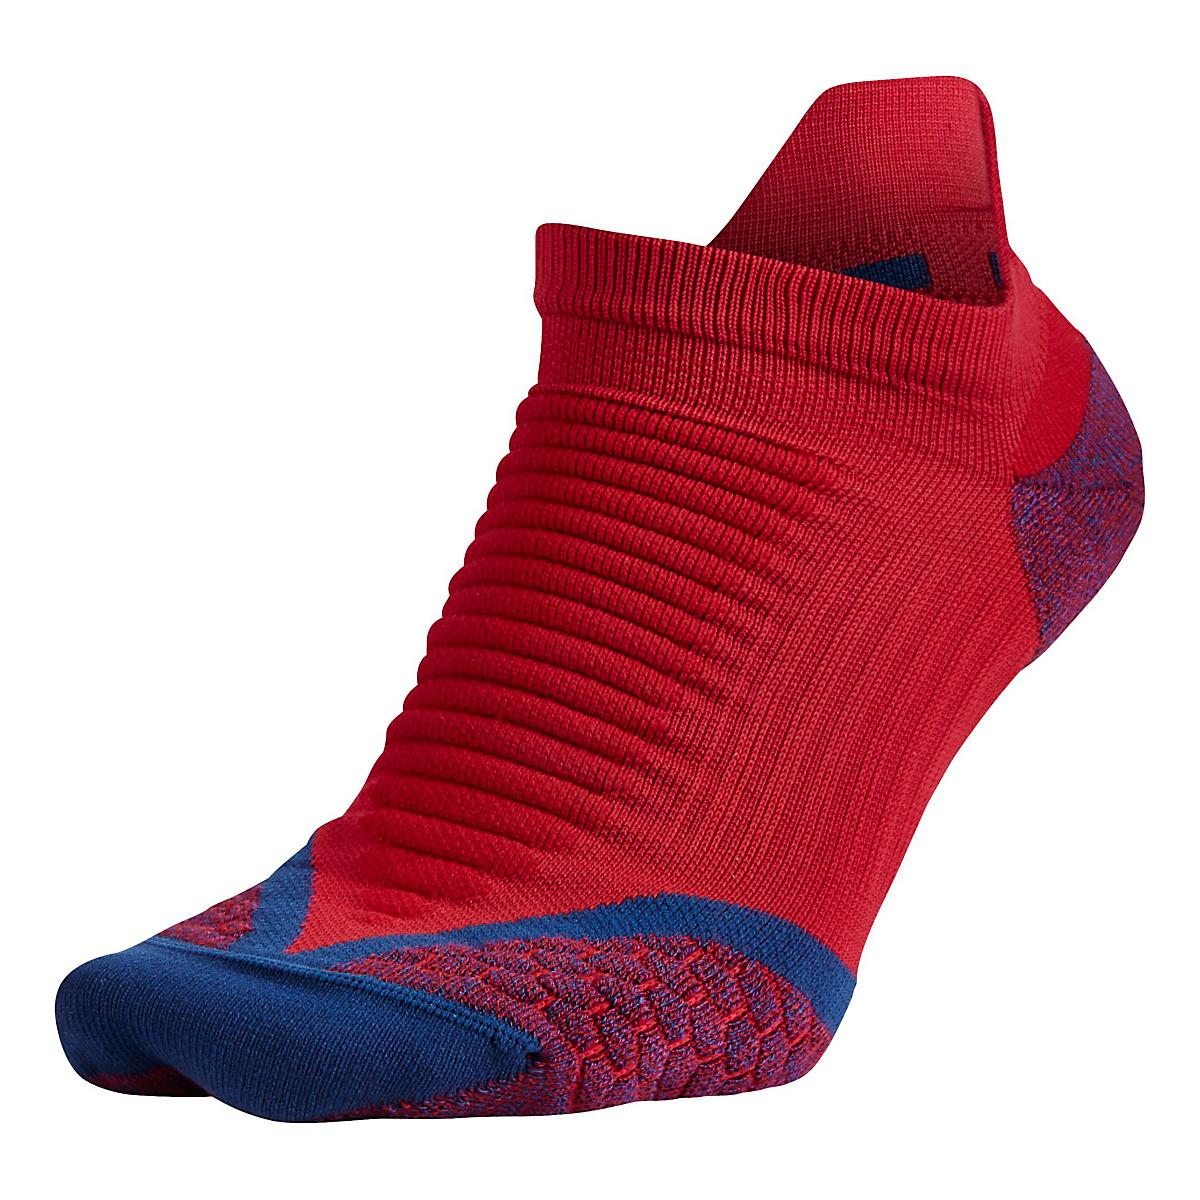 sports shoes b7dca 86cdf Nike Elite Running Cushion No Show Tab Socks at Road Runner Sports